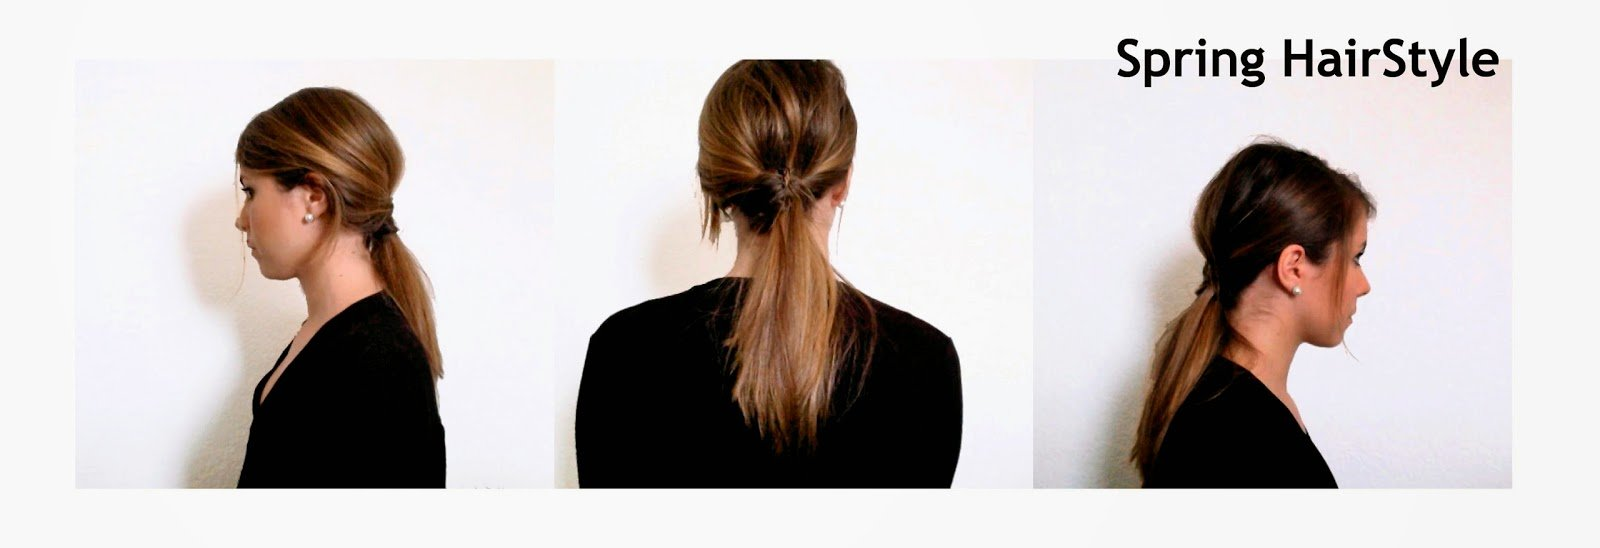 Free Queue Hairstyle Facts About China Weird Oddball Fun Wallpaper